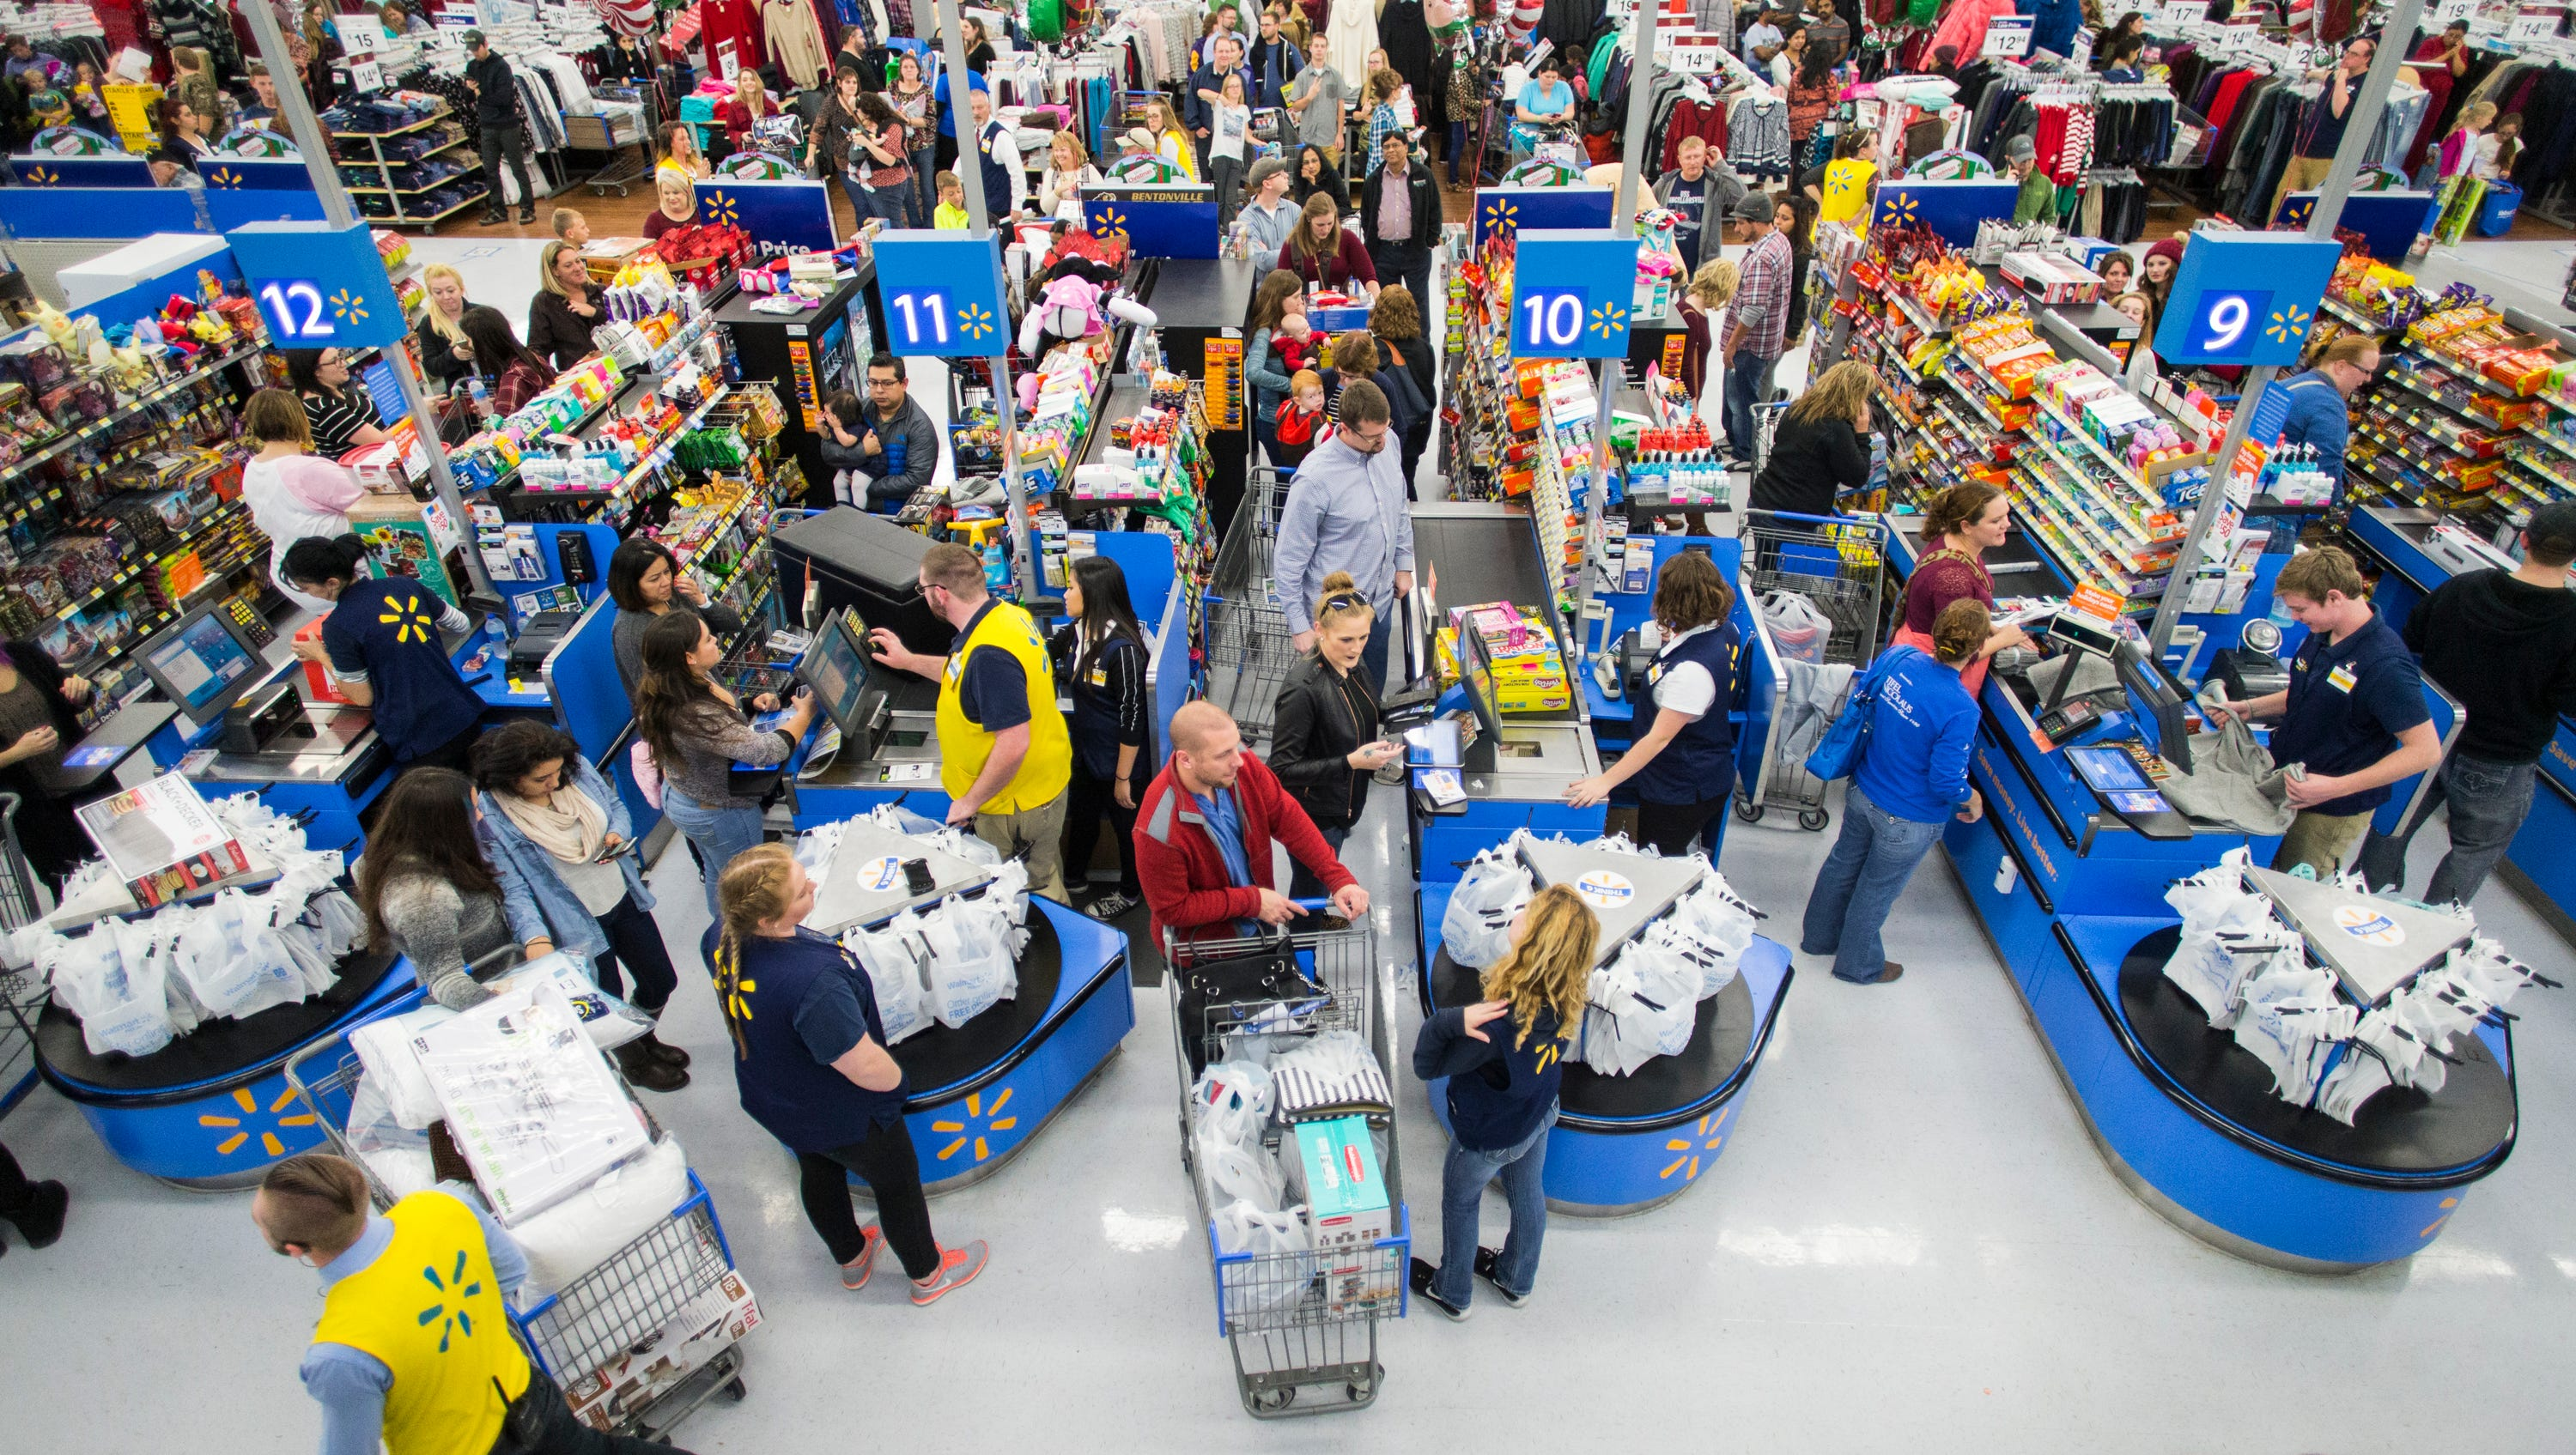 Shop Til You Drop Black Friday In Full Swing Across The Country